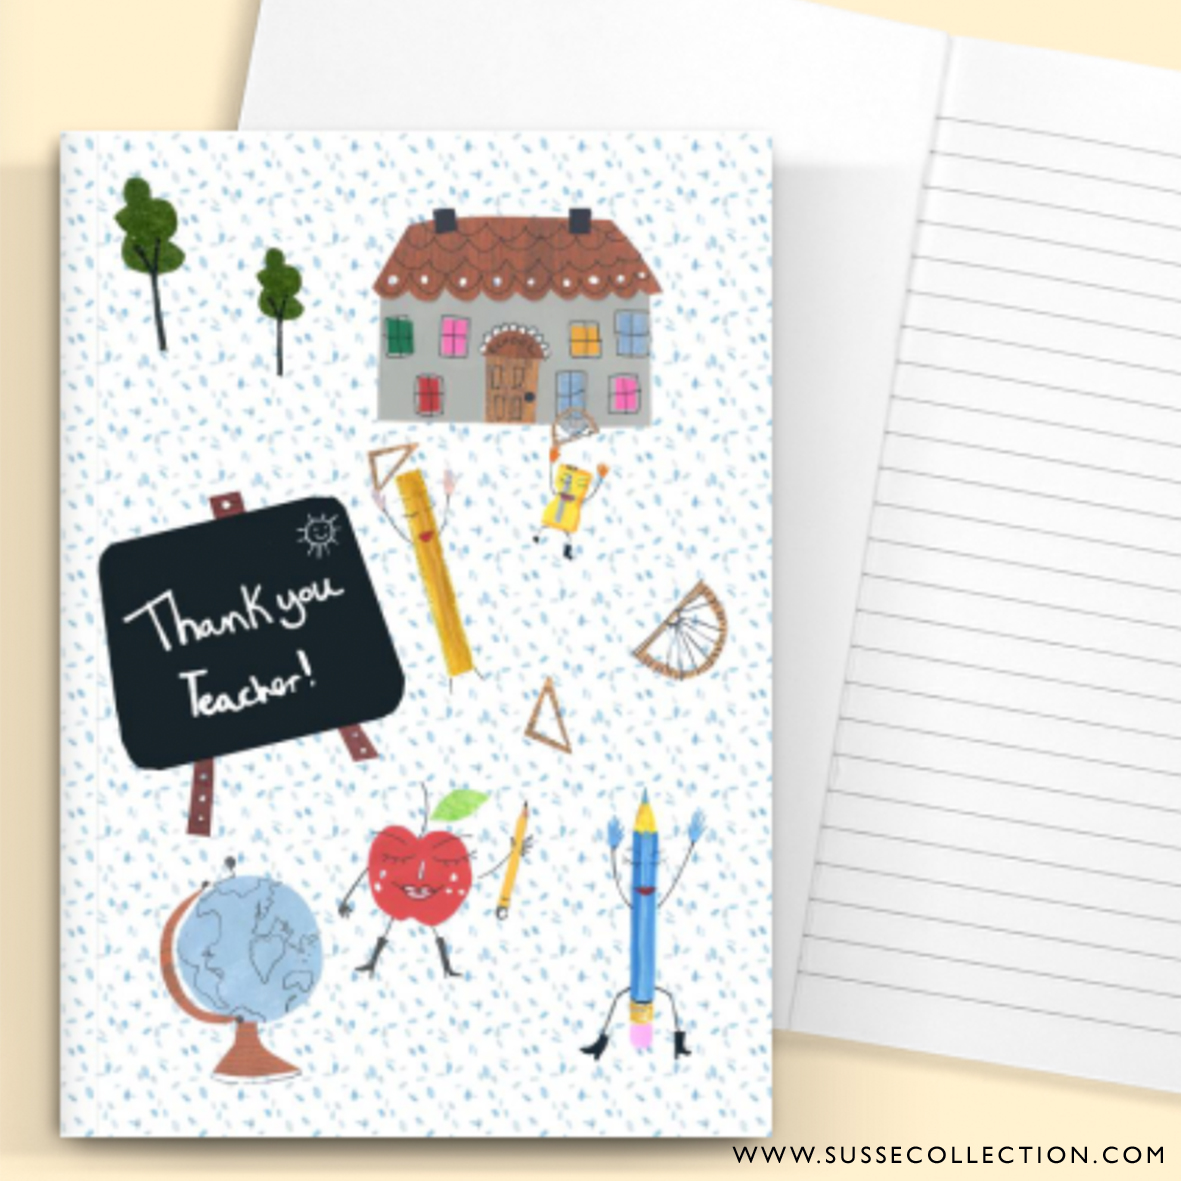 Susse Collection_Thank you teacher card.jpg